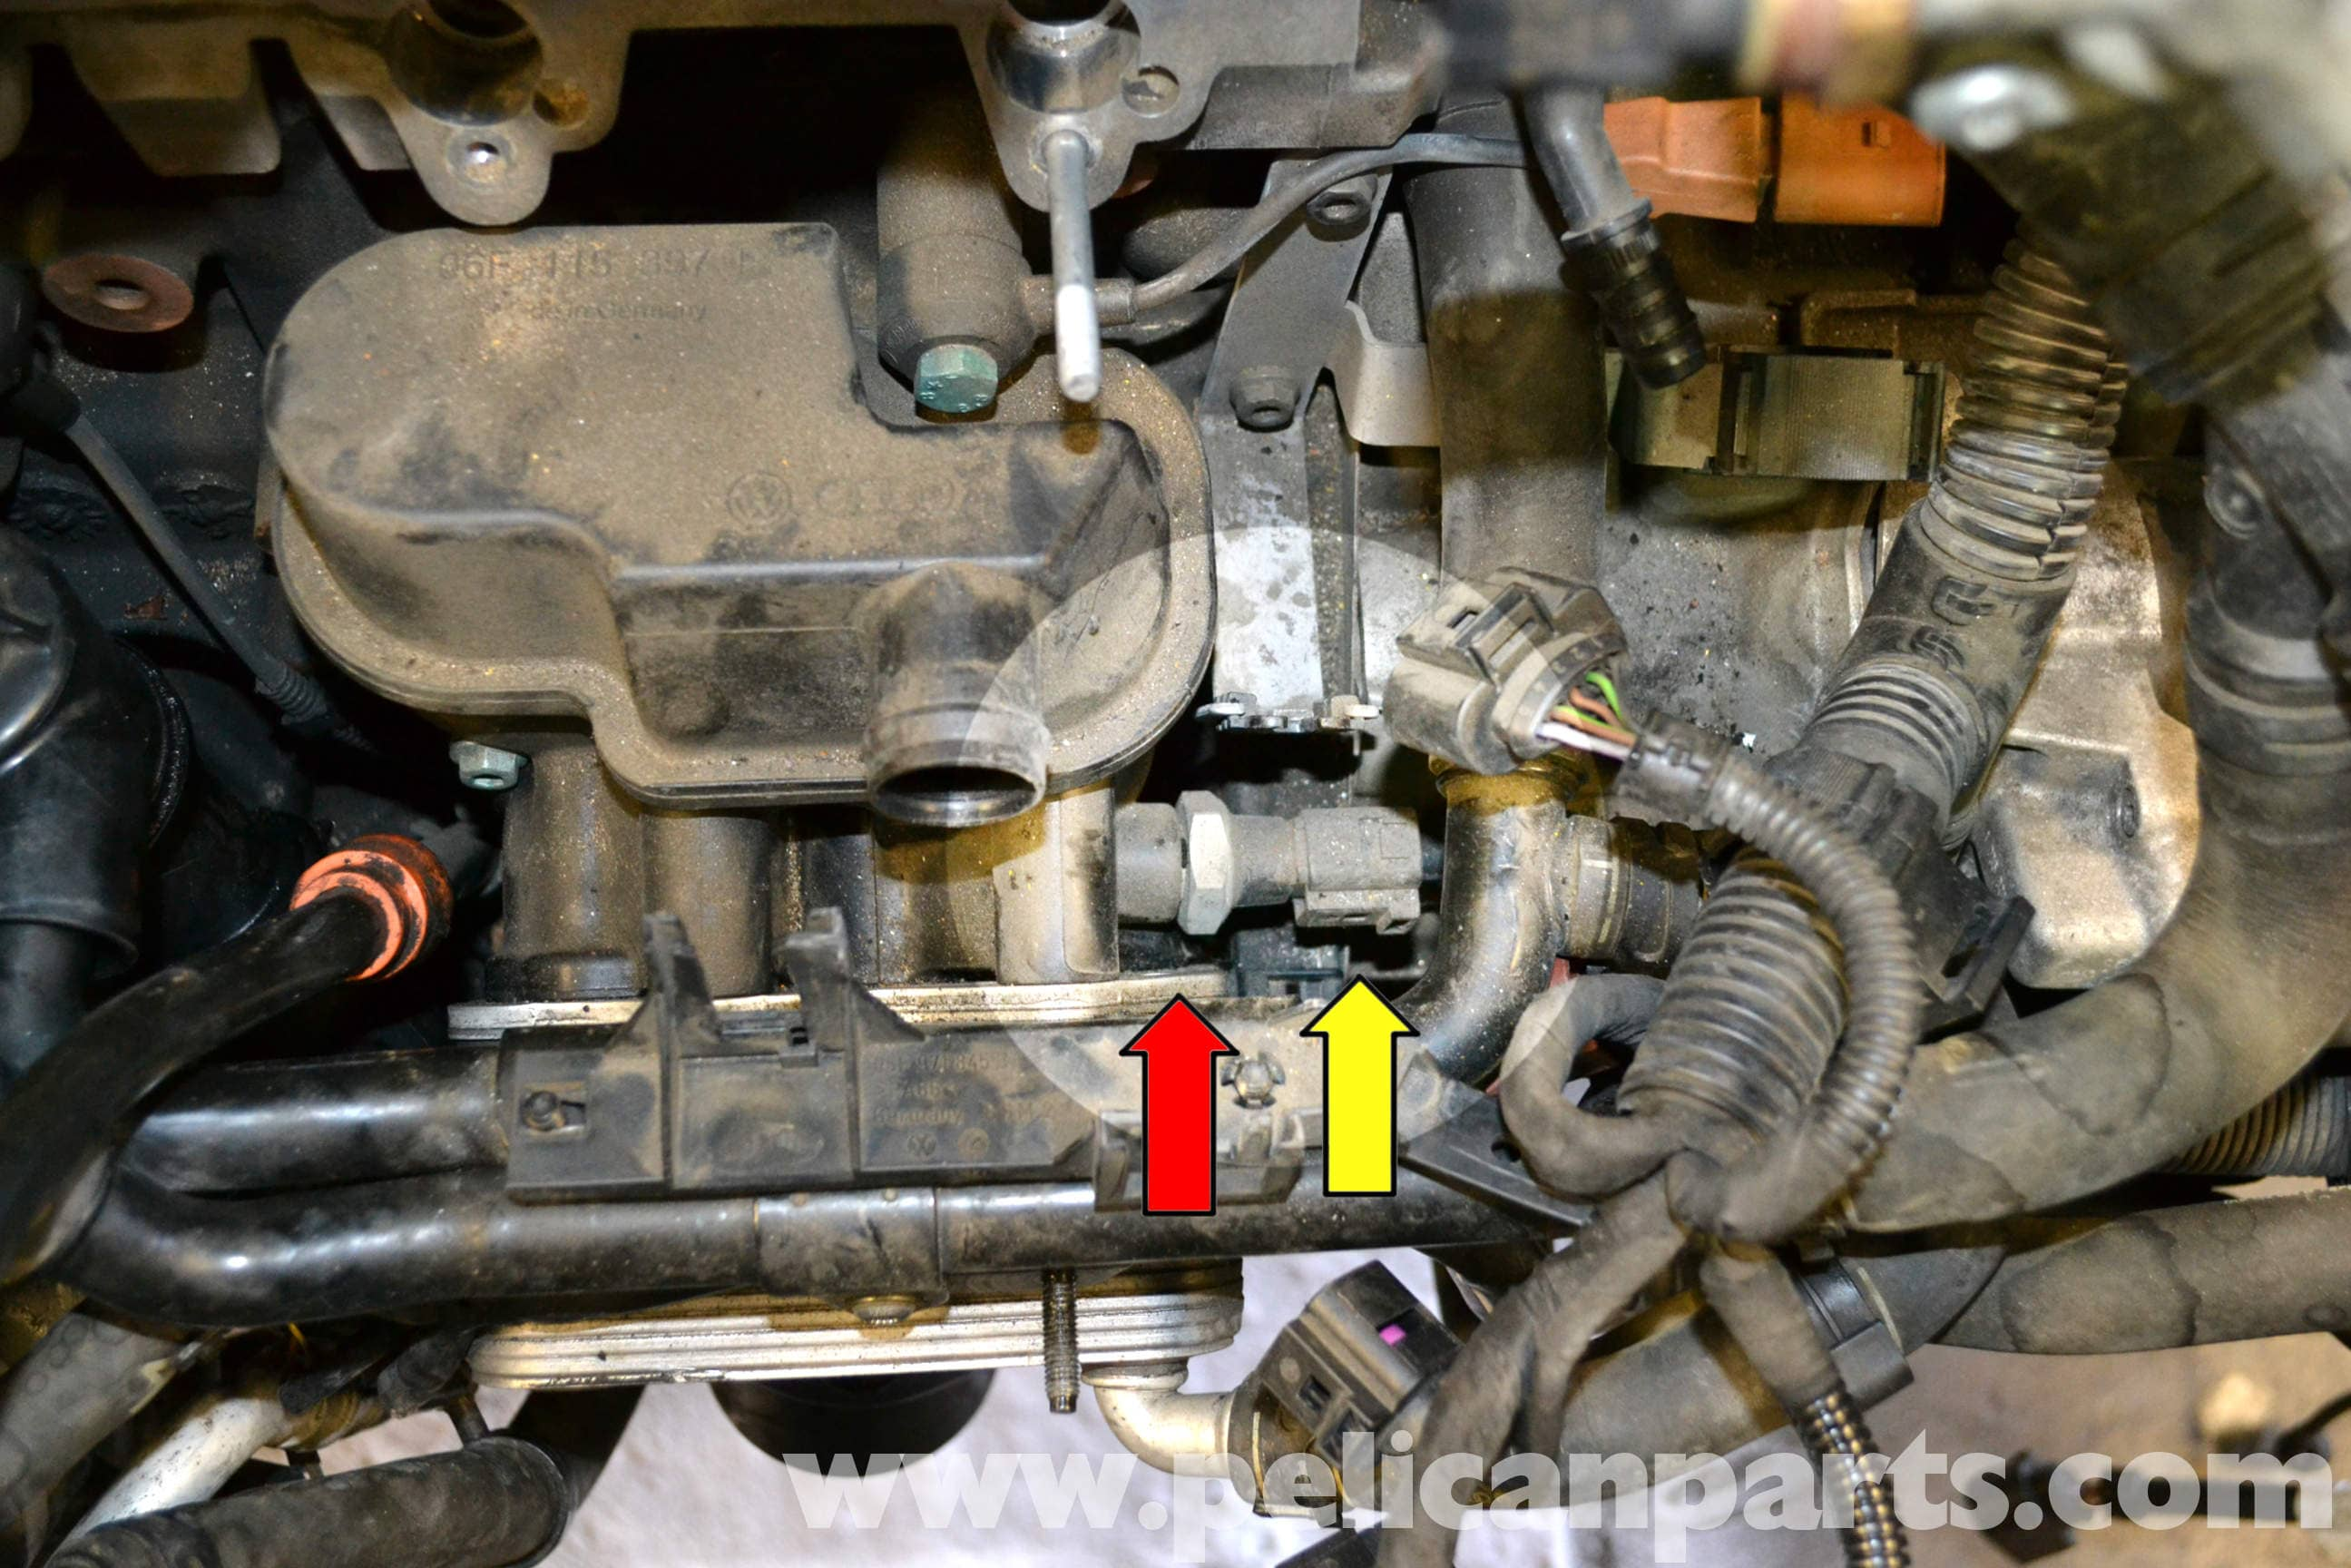 Volkswagen Golf Gti Mk V Oil Pressure Switch Replacement 2006 2009 Chevy Sending Unit Wiring Diagram Large Image Extra